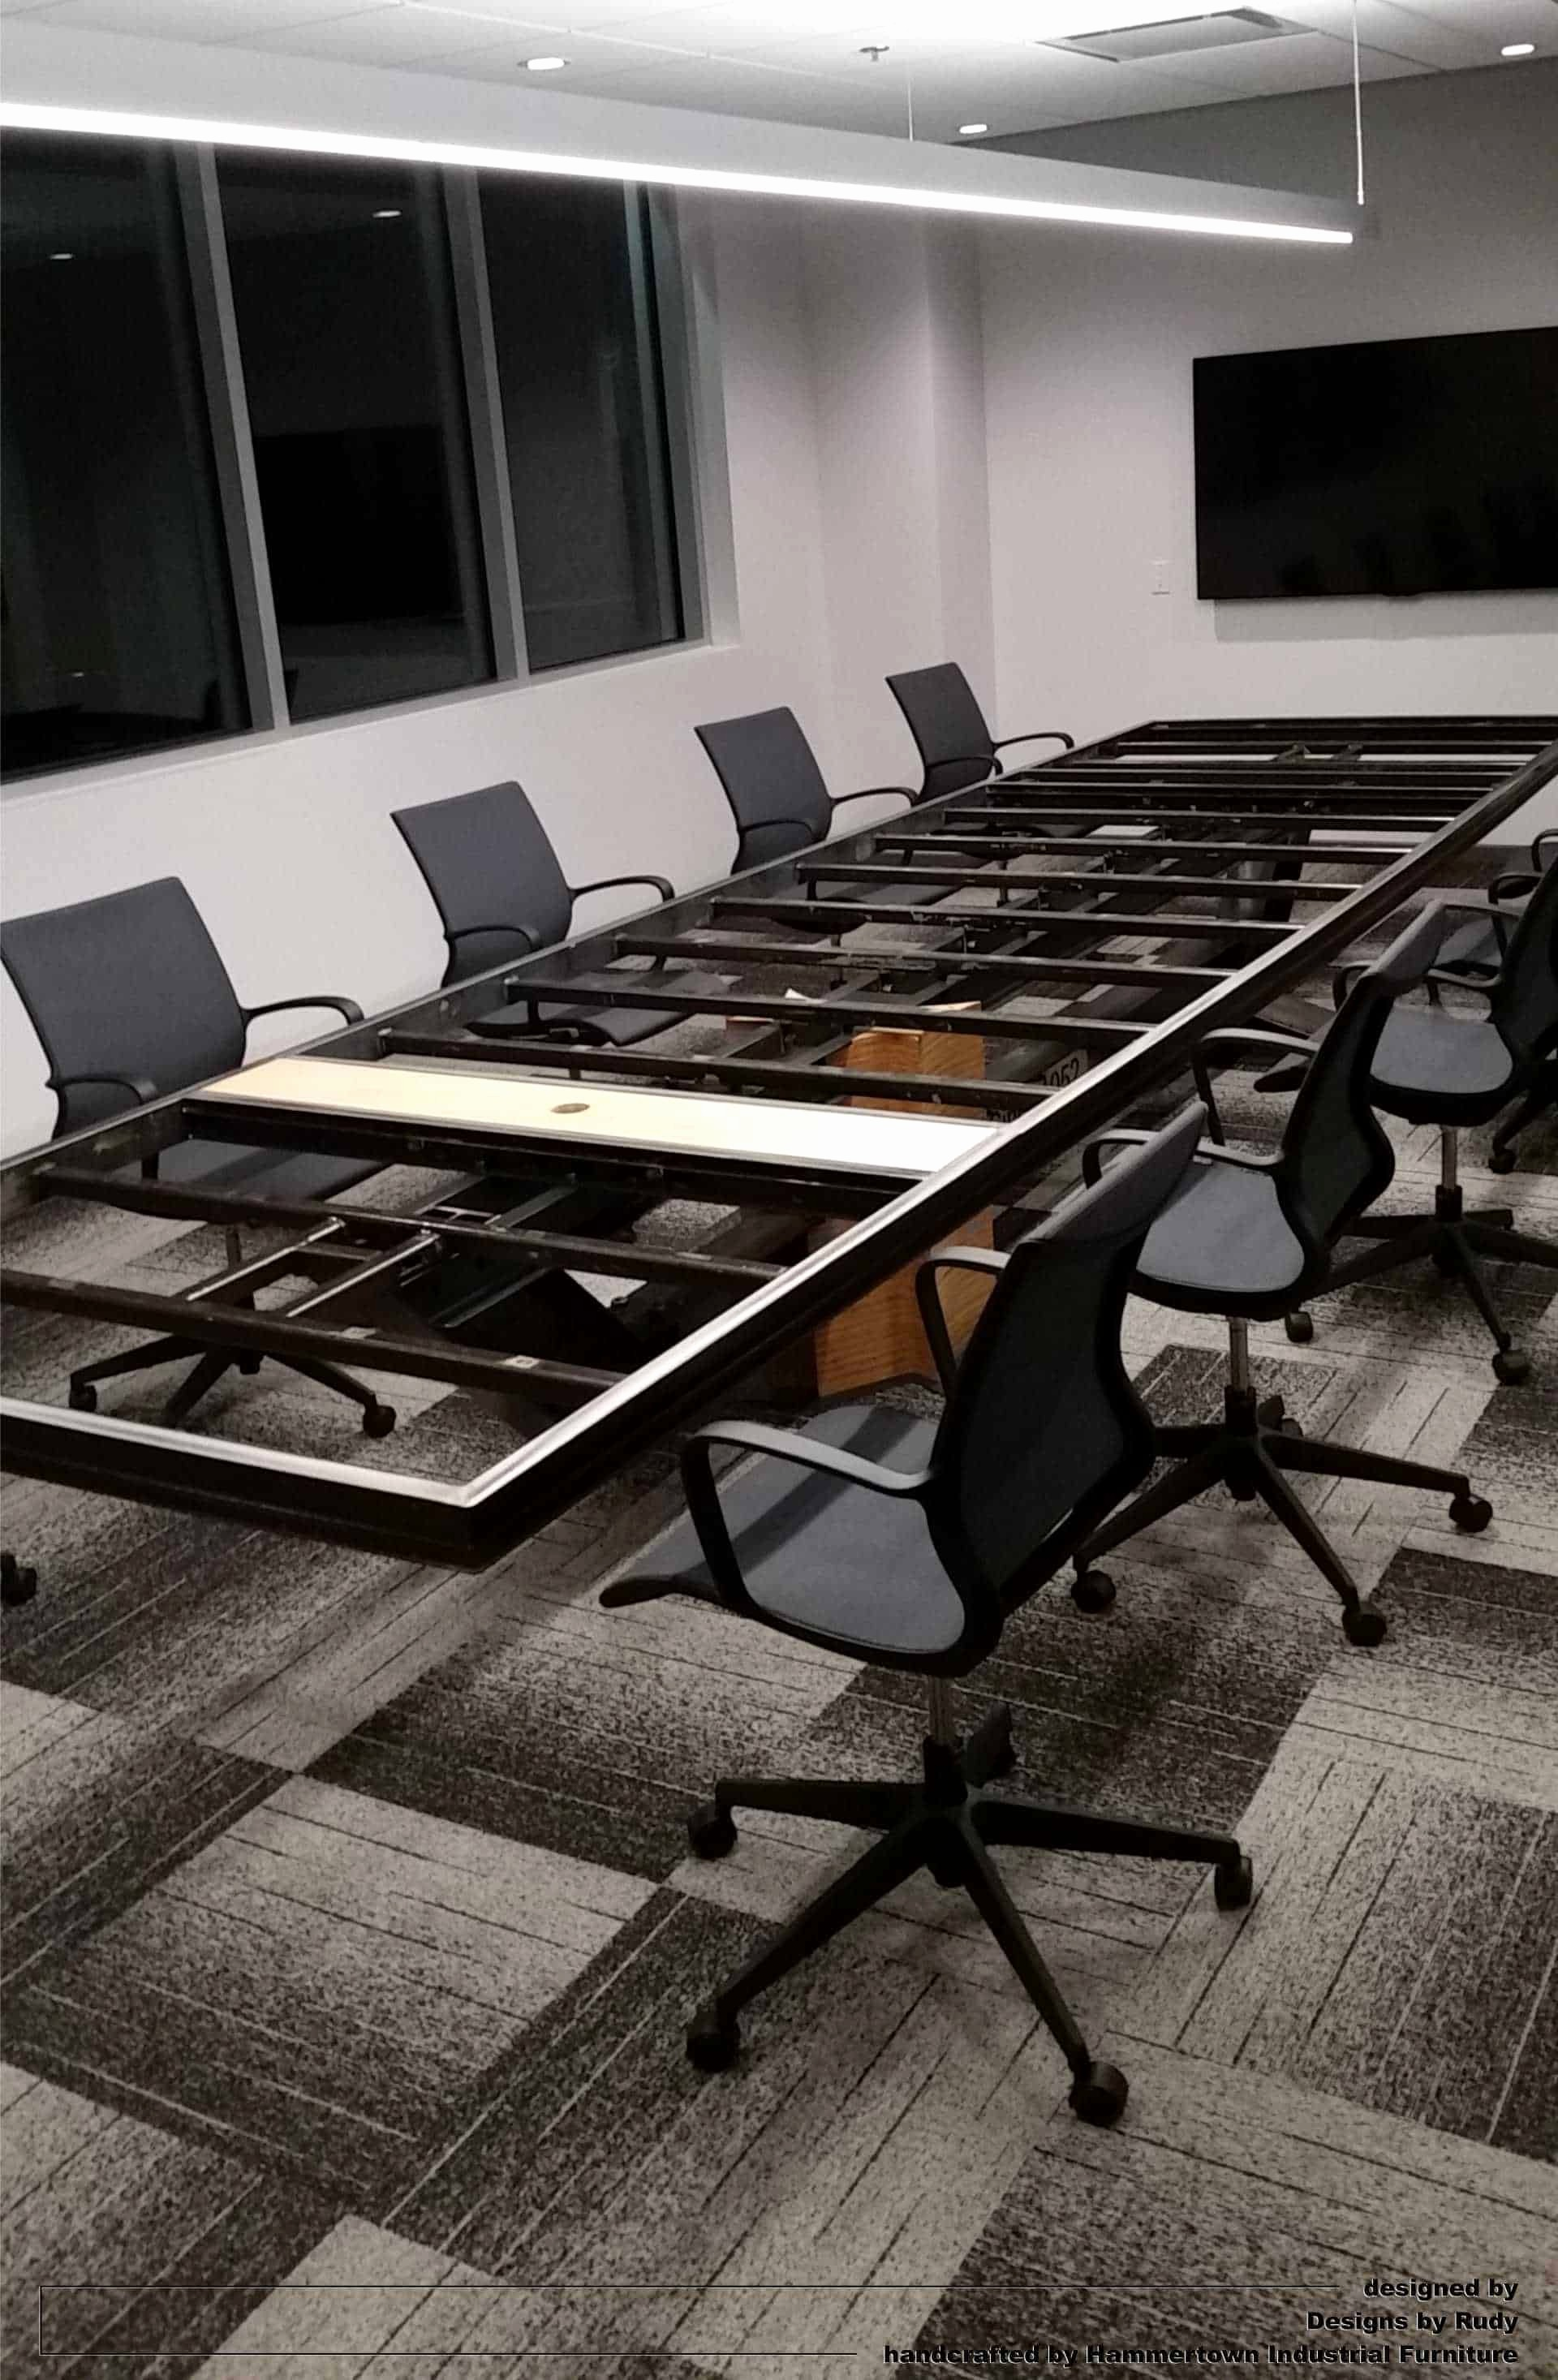 12*12 Multiplication Table Awesome Concrete top and I Beam Frame Conference Room Table